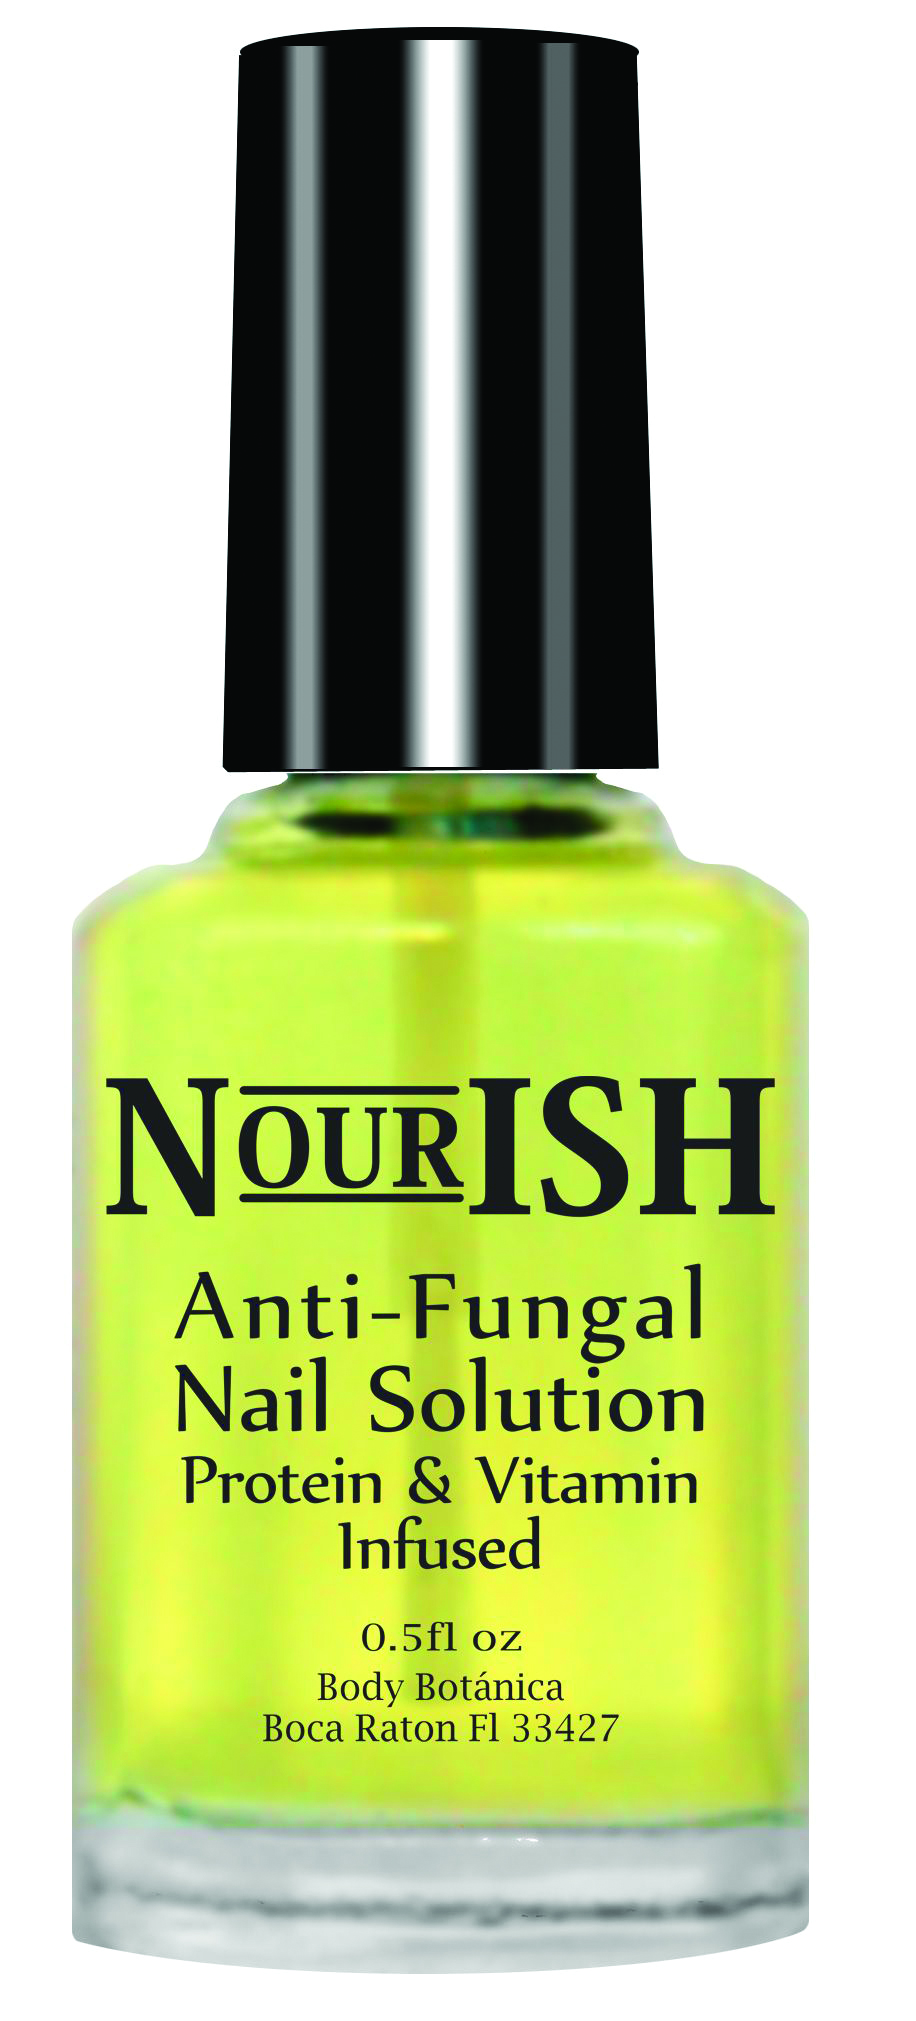 Prevent Fungus in the First Place